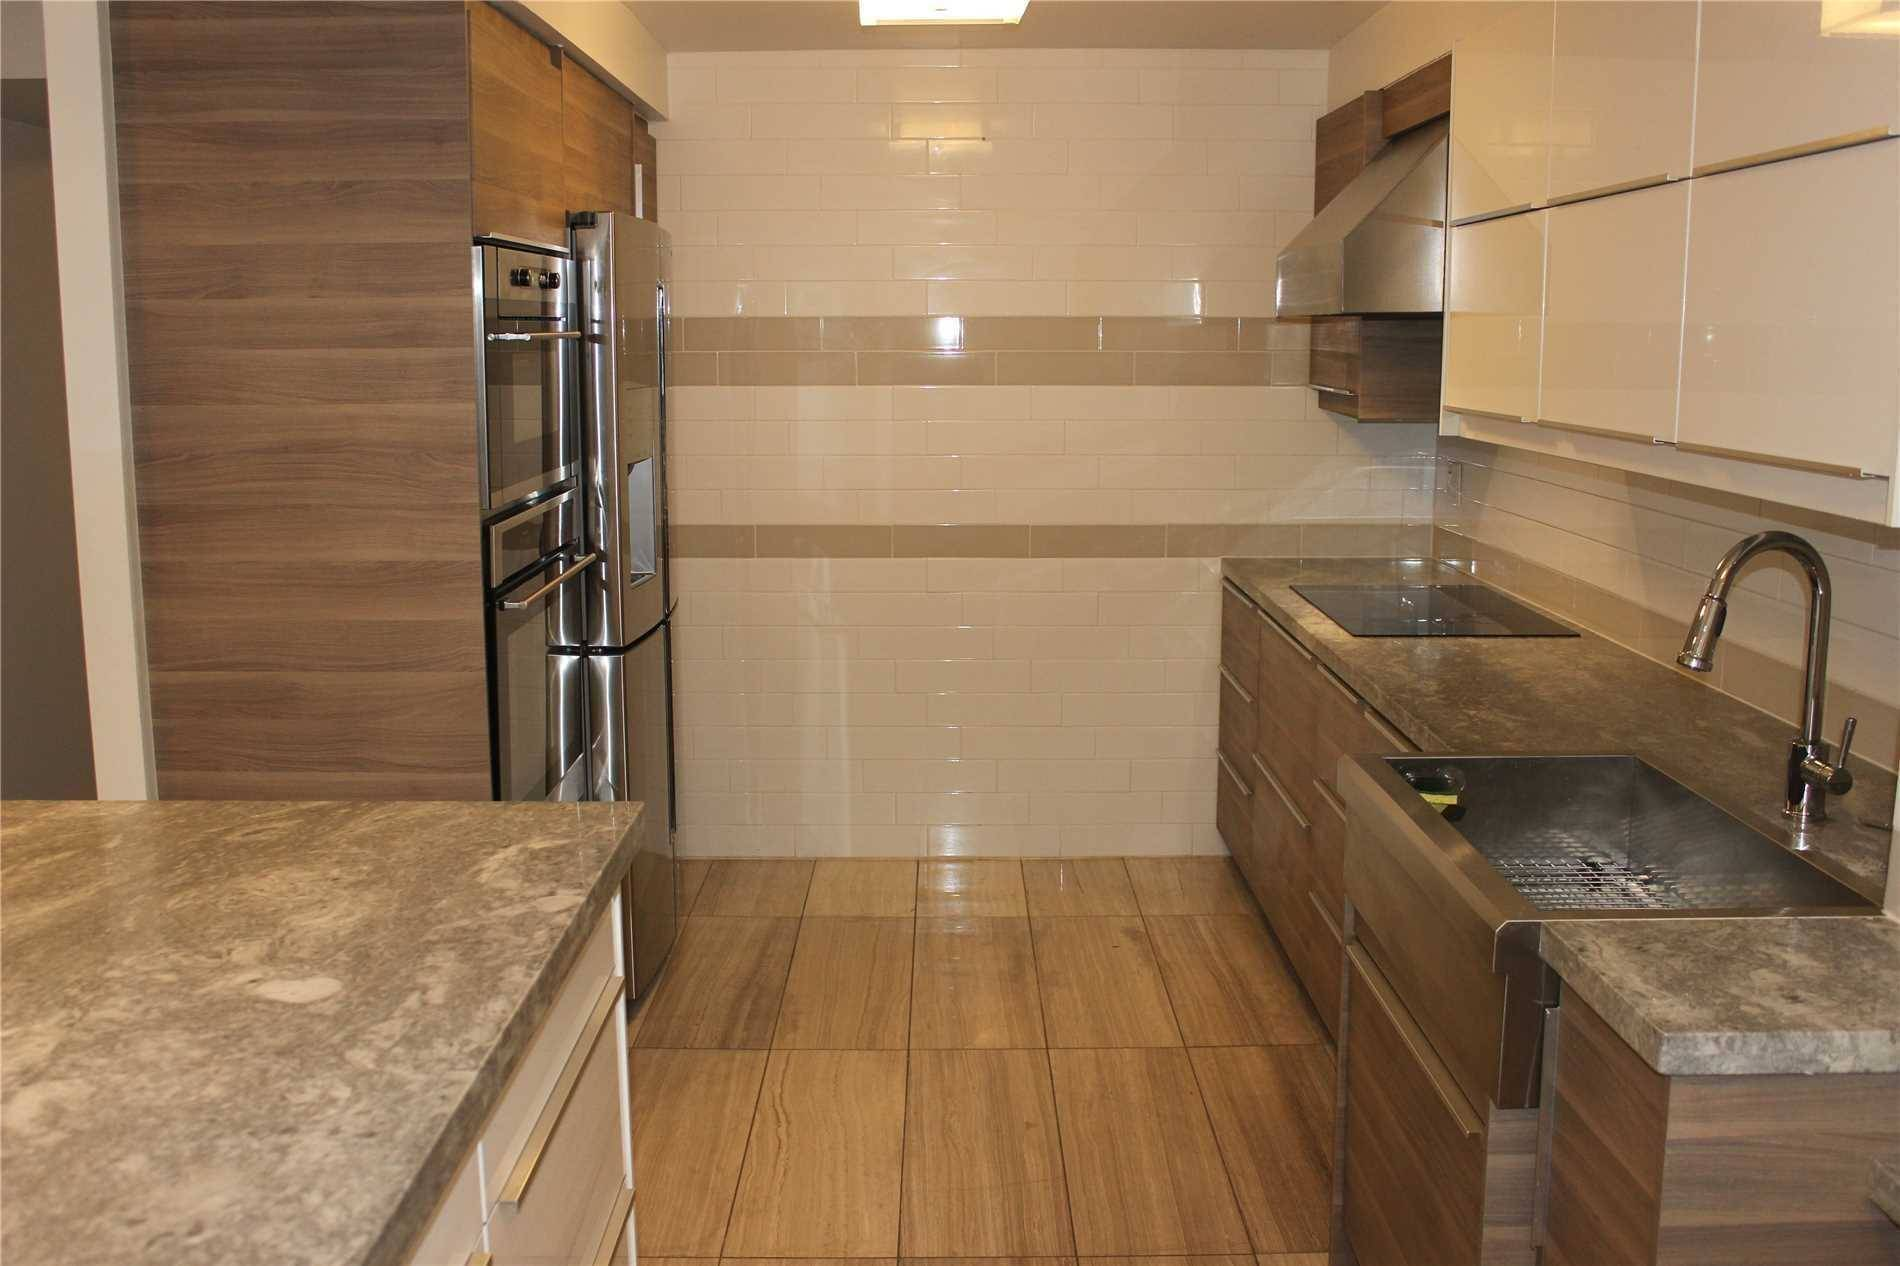 Condo for sale at 18 Hollywood Ave Unit 201 Toronto Ontario - MLS: C4554951